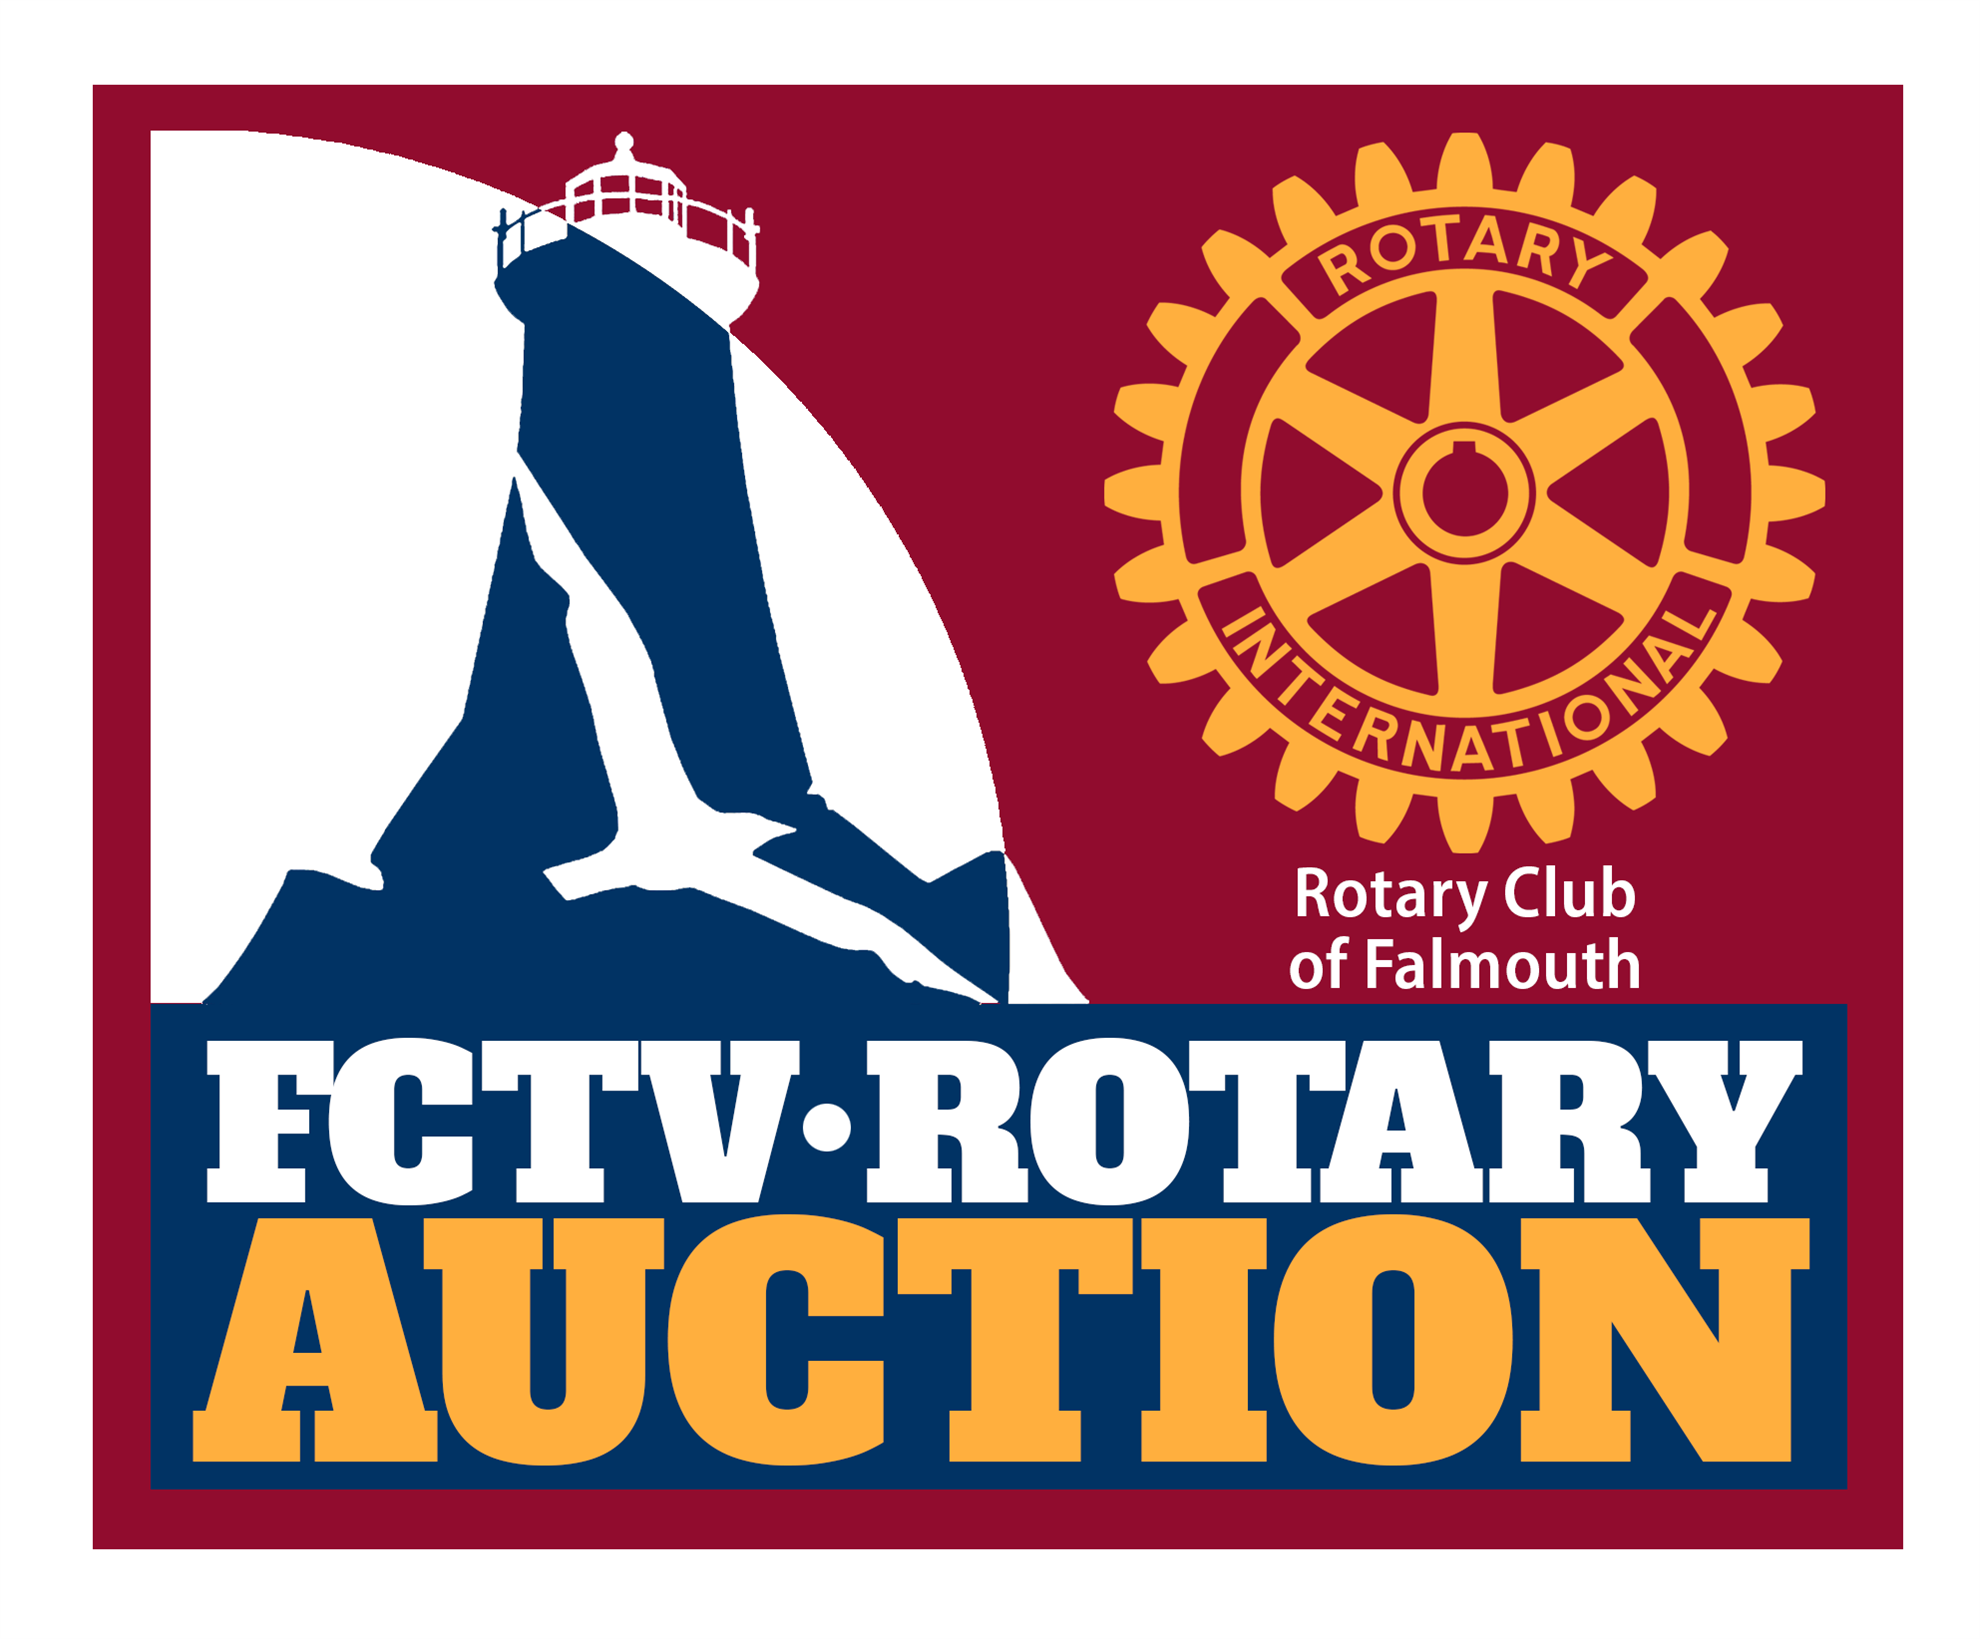 FCTV Rotary Auction event logo